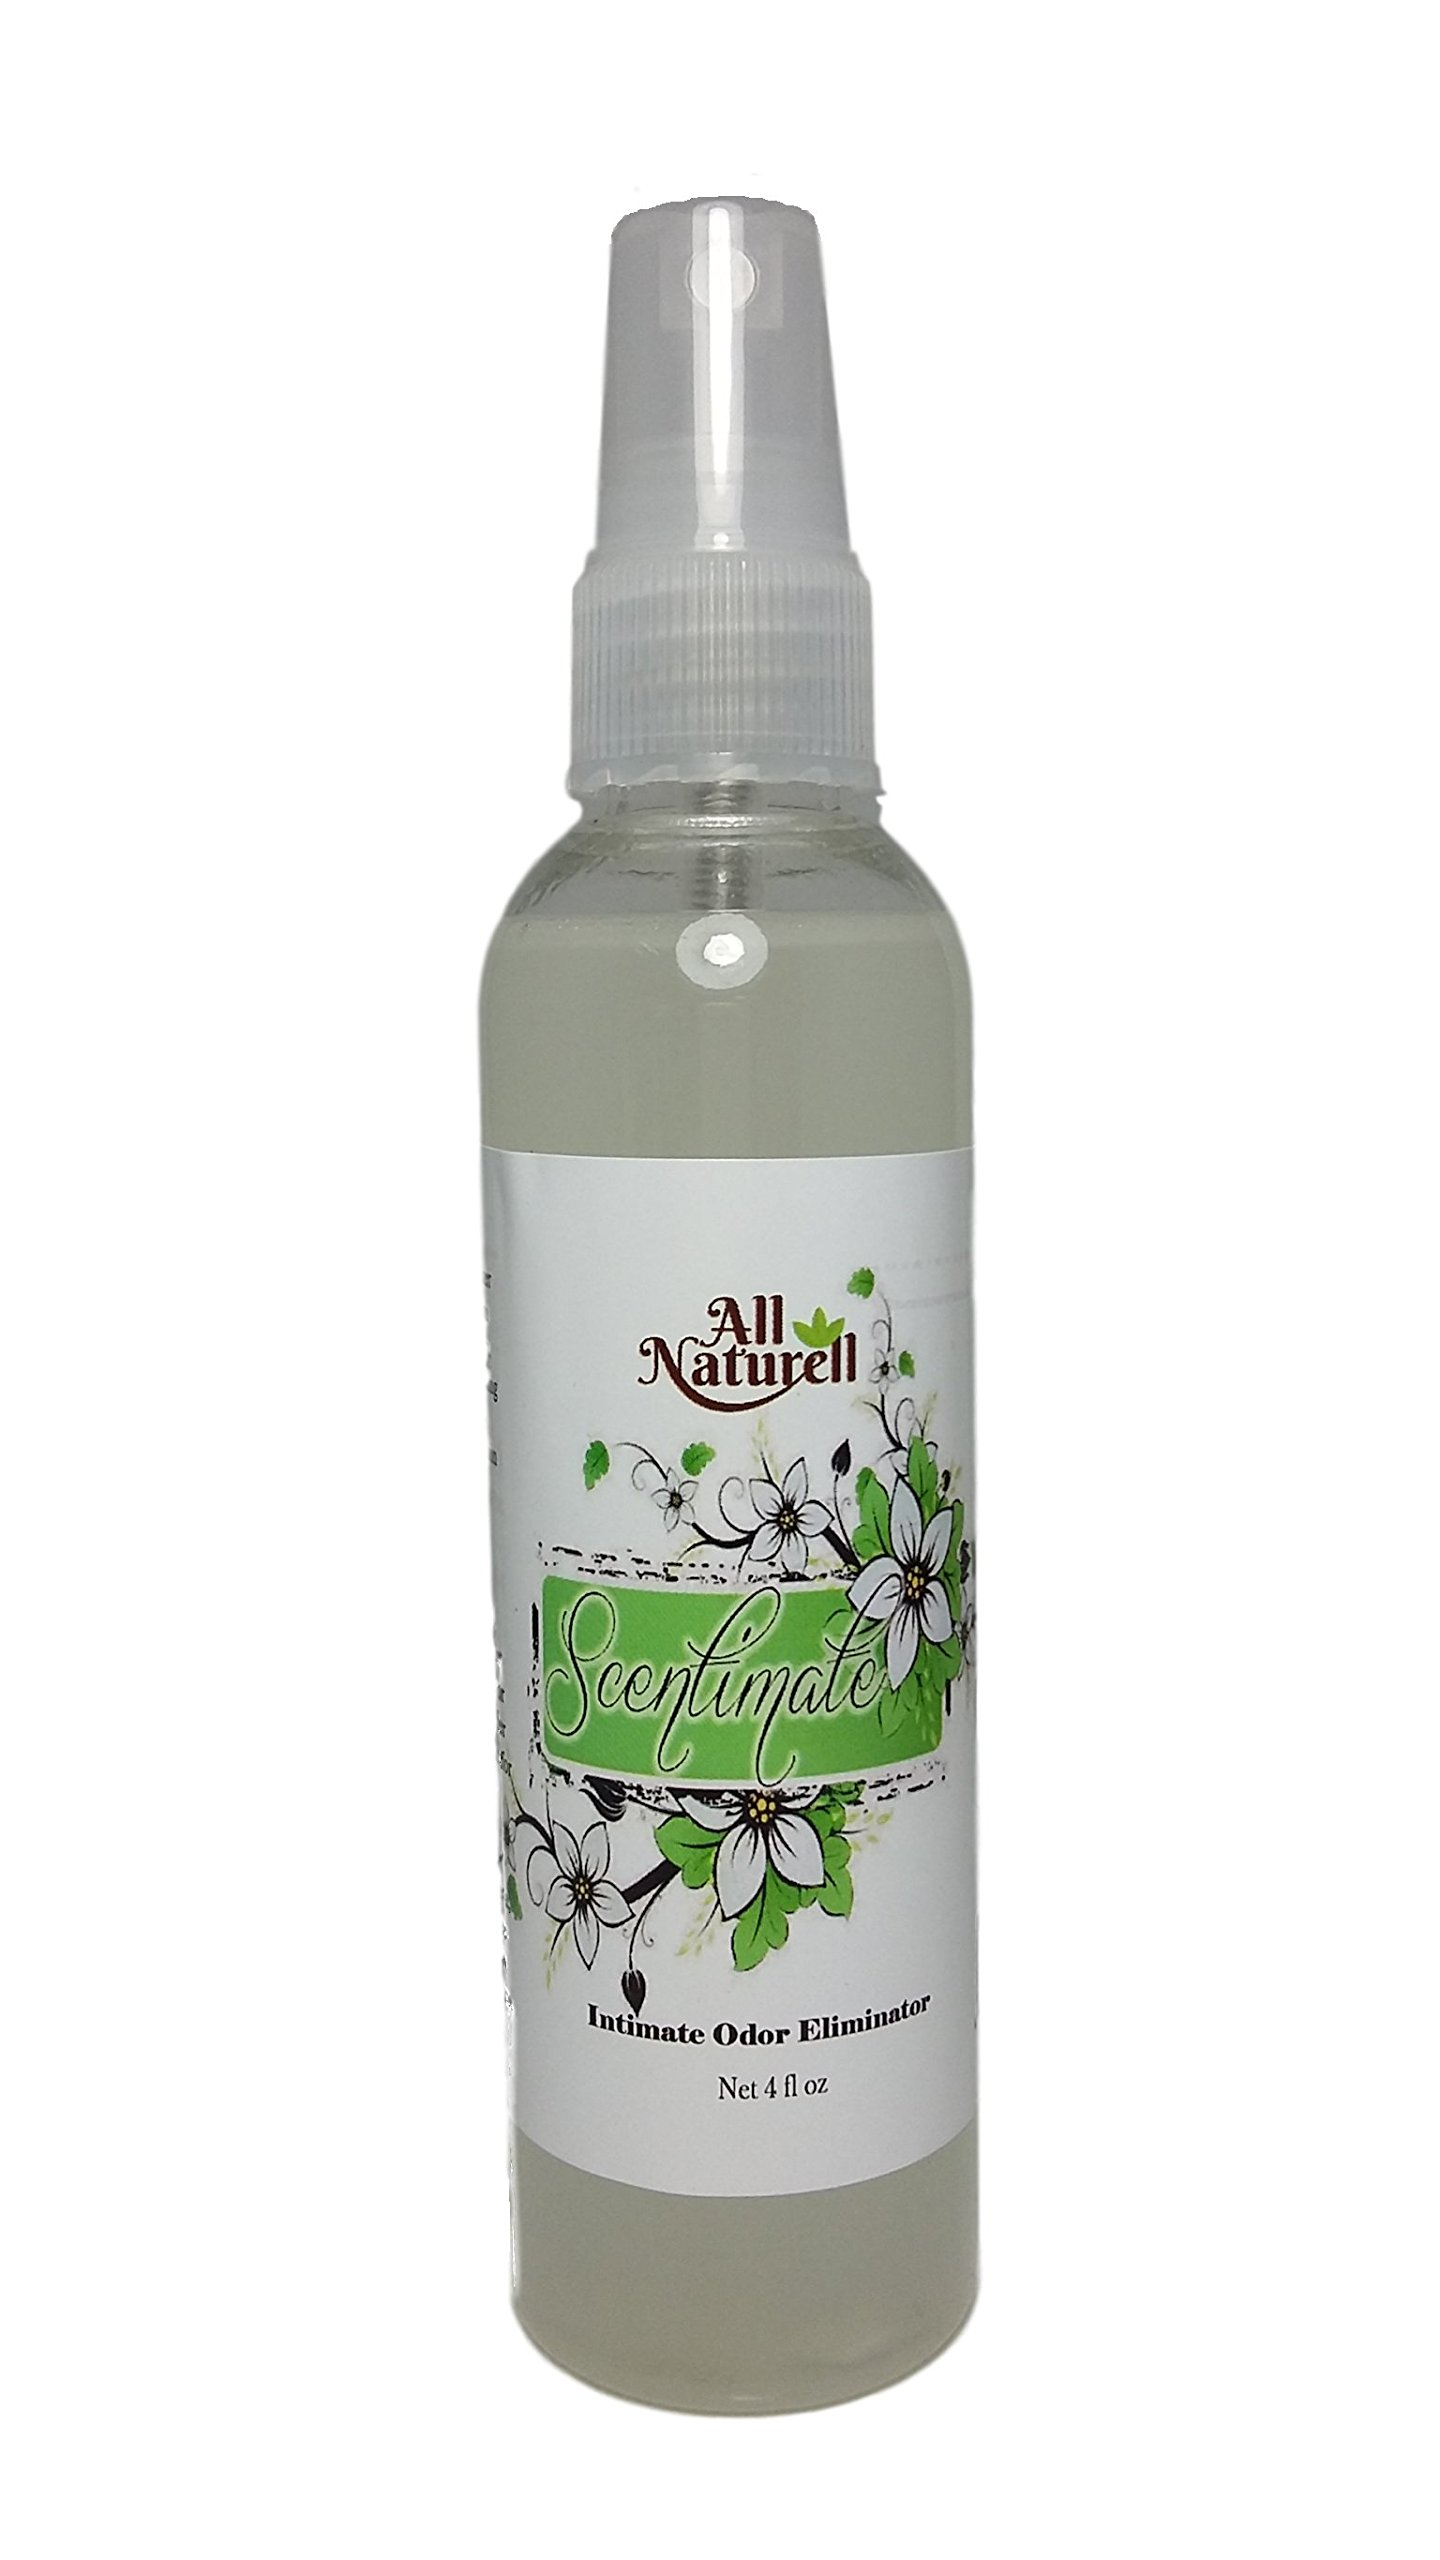 Scentimate Intimate Odor Eliminator For Women and Men - 100% Natural Ingredients Works Instantly